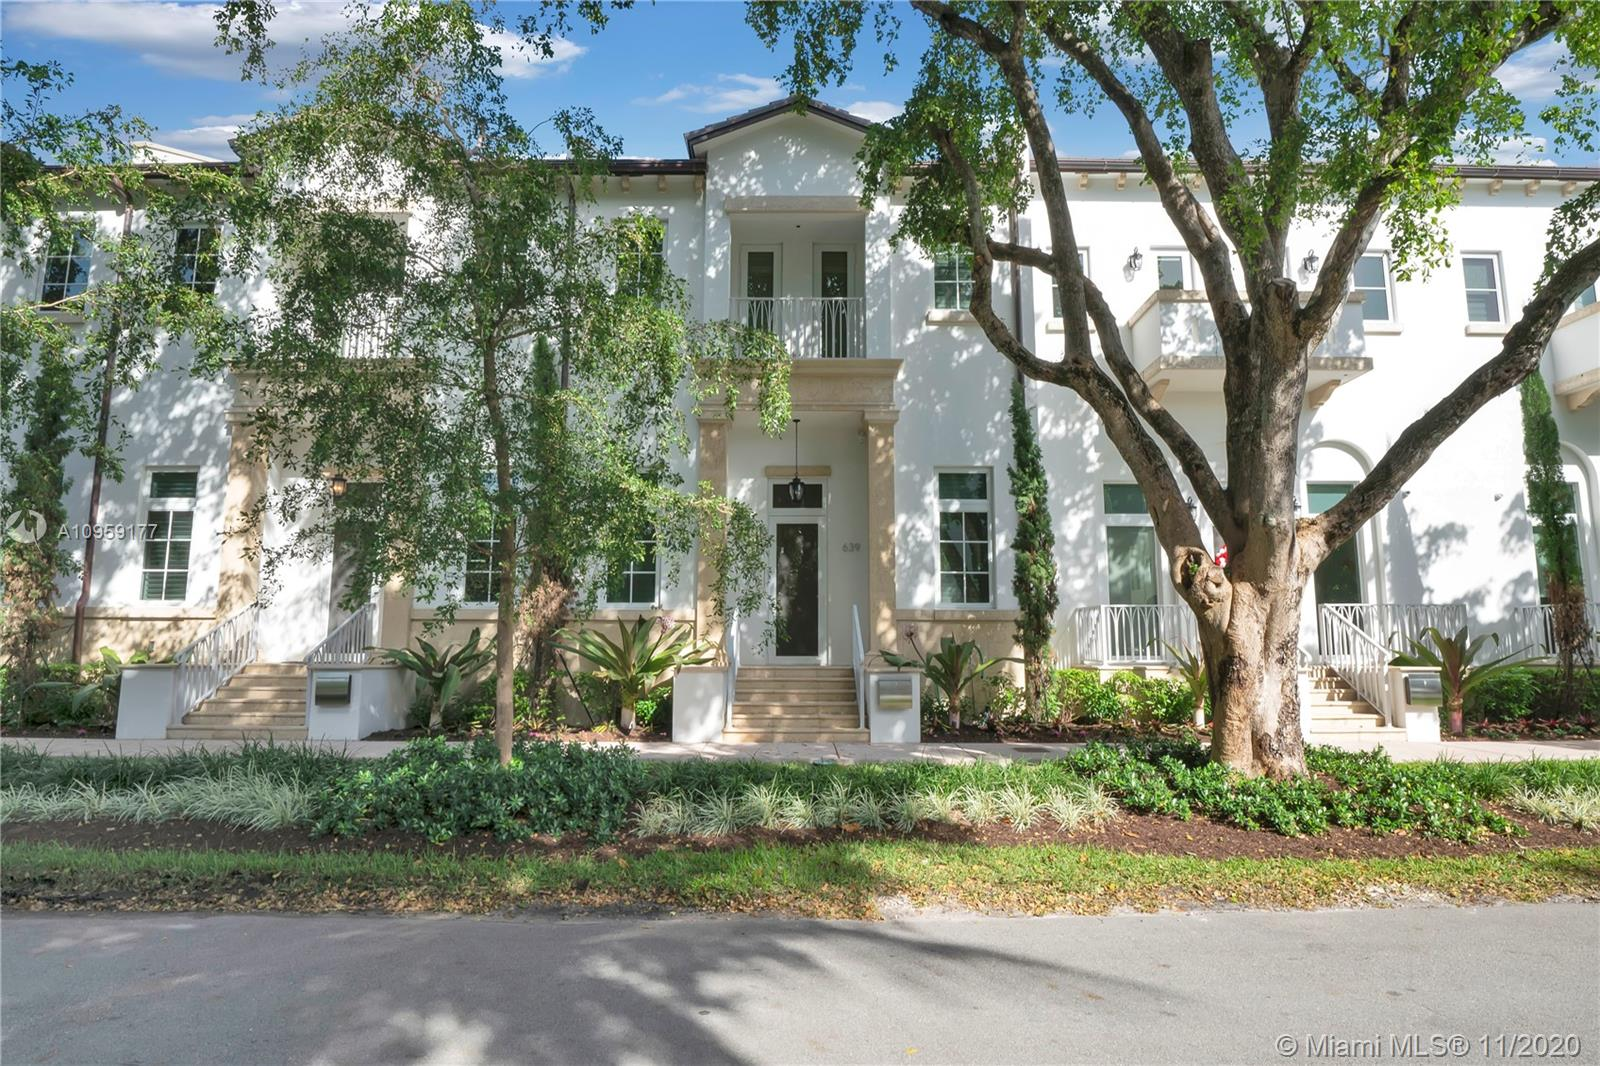 Beautifully appointed tri-level townhome in the heart of Coral Gables. Enter the home on the main level and enjoy the glow of the gas fireplace in the living room that has an 18ft tray ceiling design. Open the bi-fold impact doors in the courtyard for more living space. An inviting spot for family and friends is the dining area off the large cooking island in the kitchen. The Mia Cuccina top of the line glass kitchen cabinets with marble countertops was crafted with ample storage in mind. The upper floor includes the master suite with large closets and bath, as well as 2 ensuite bedrooms. All levels of the home are serviced by the elevator in the private 2 car garage. The home is close to CG Youth Center, golf courses & fine dining. Enjoy the beauty of Coral Gables, its history and charm.